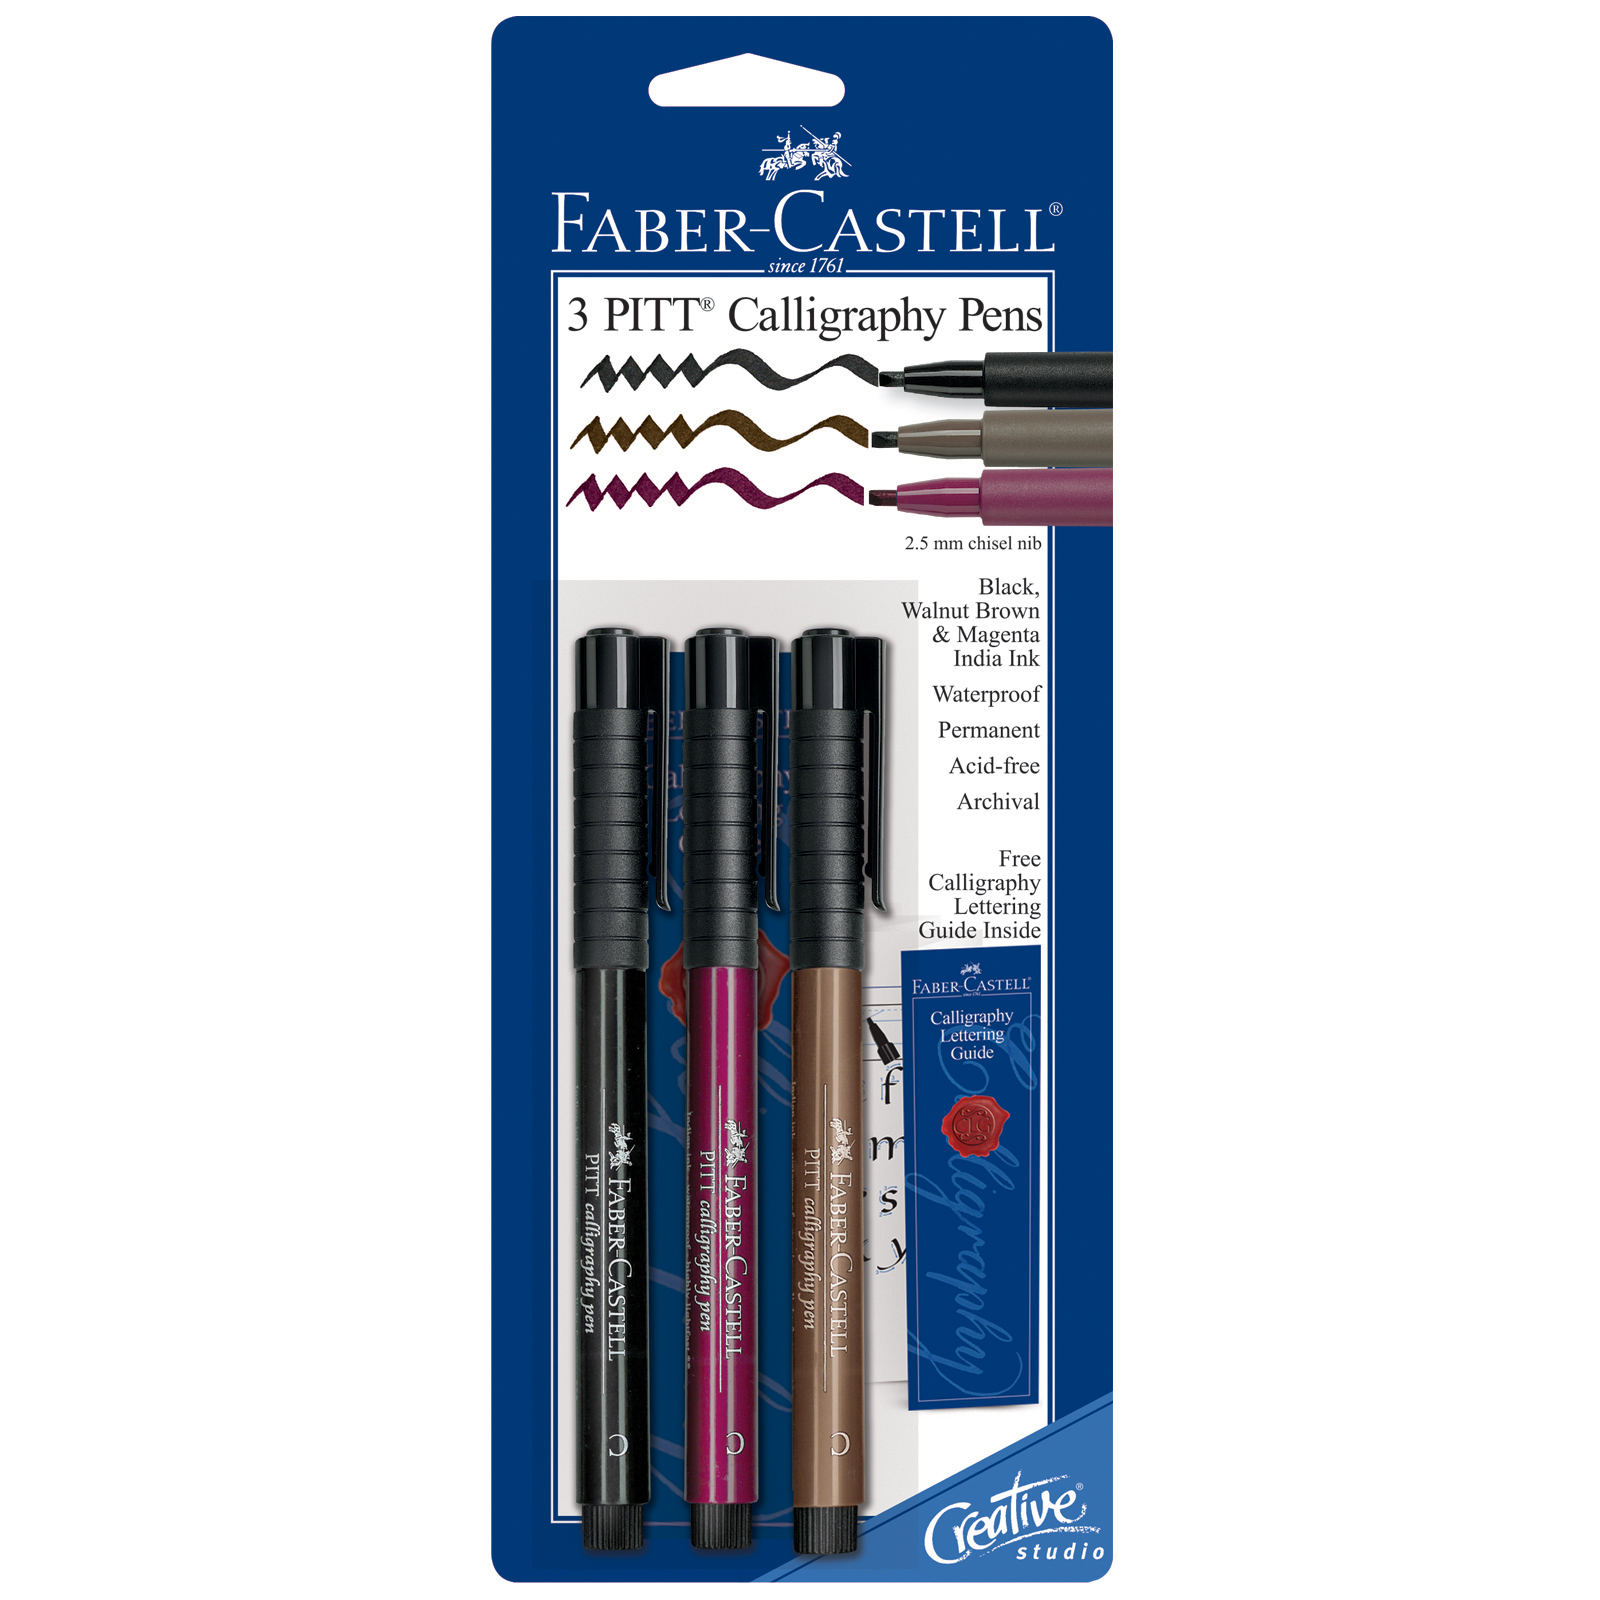 Calligraphy pens sets